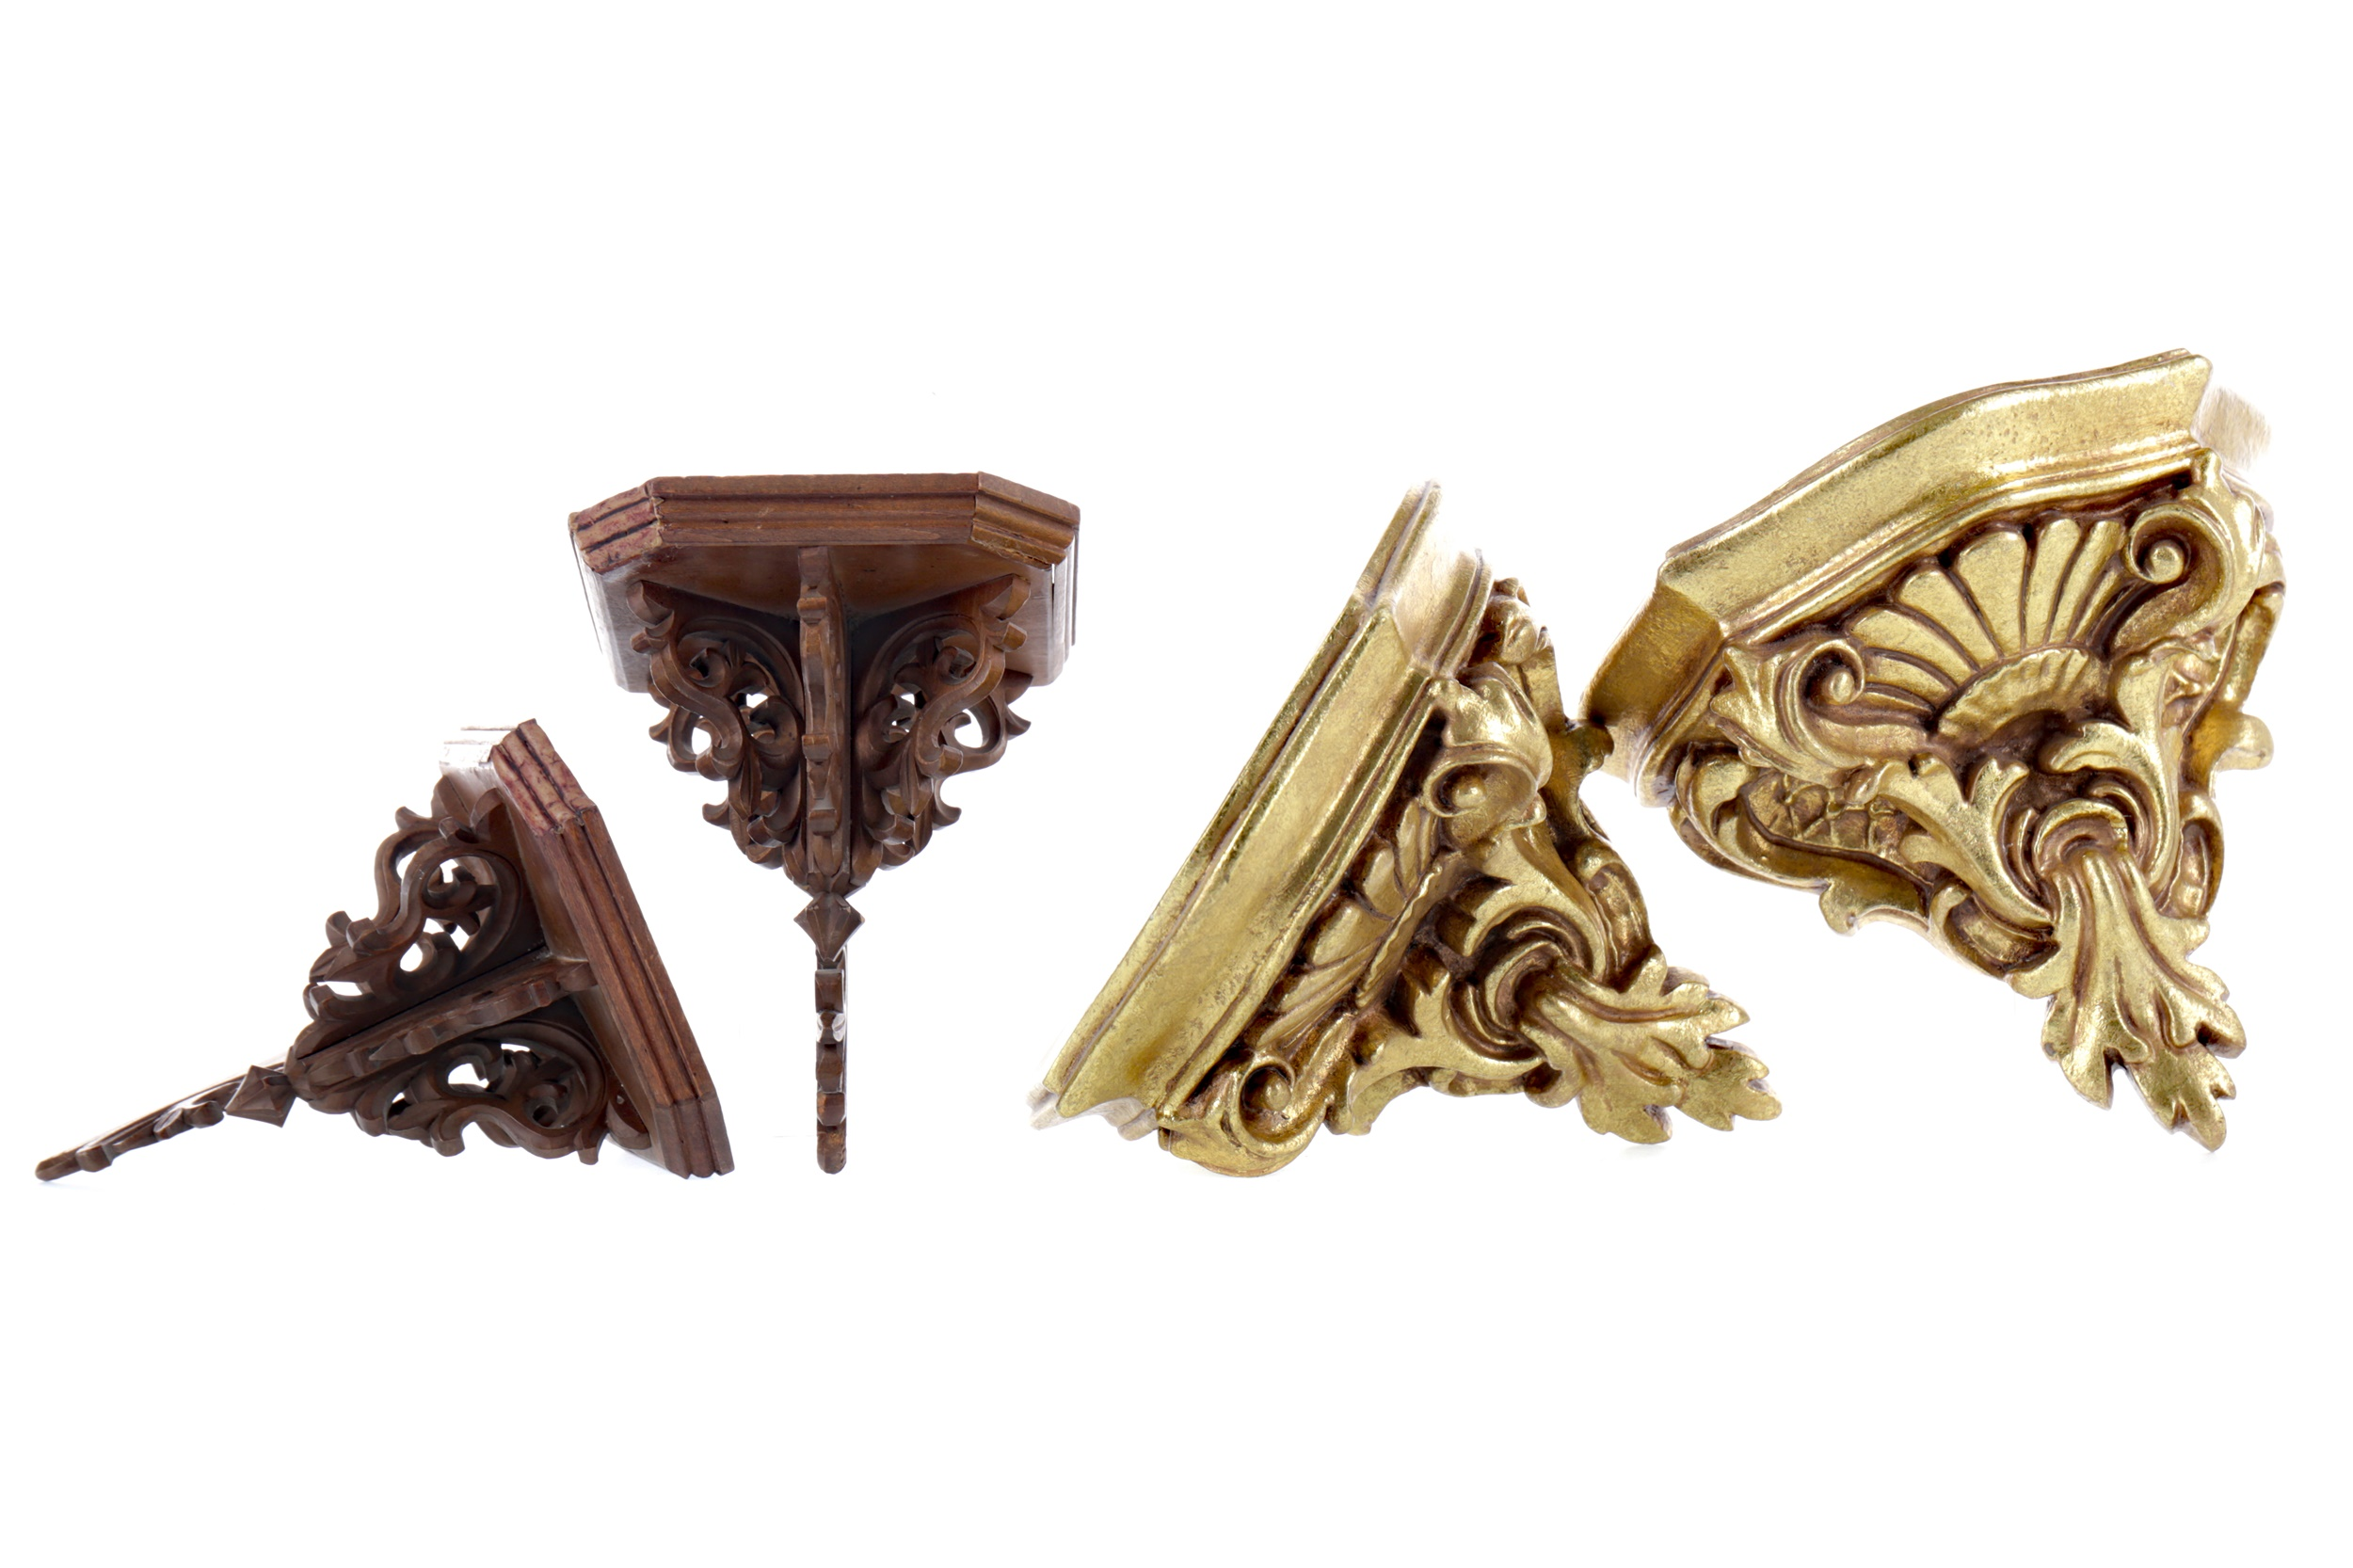 A PAIR OF ROCOCO STYLE GILDED RESIN WALL BRACKETS, ALONG WITH ANOTHER PAIR